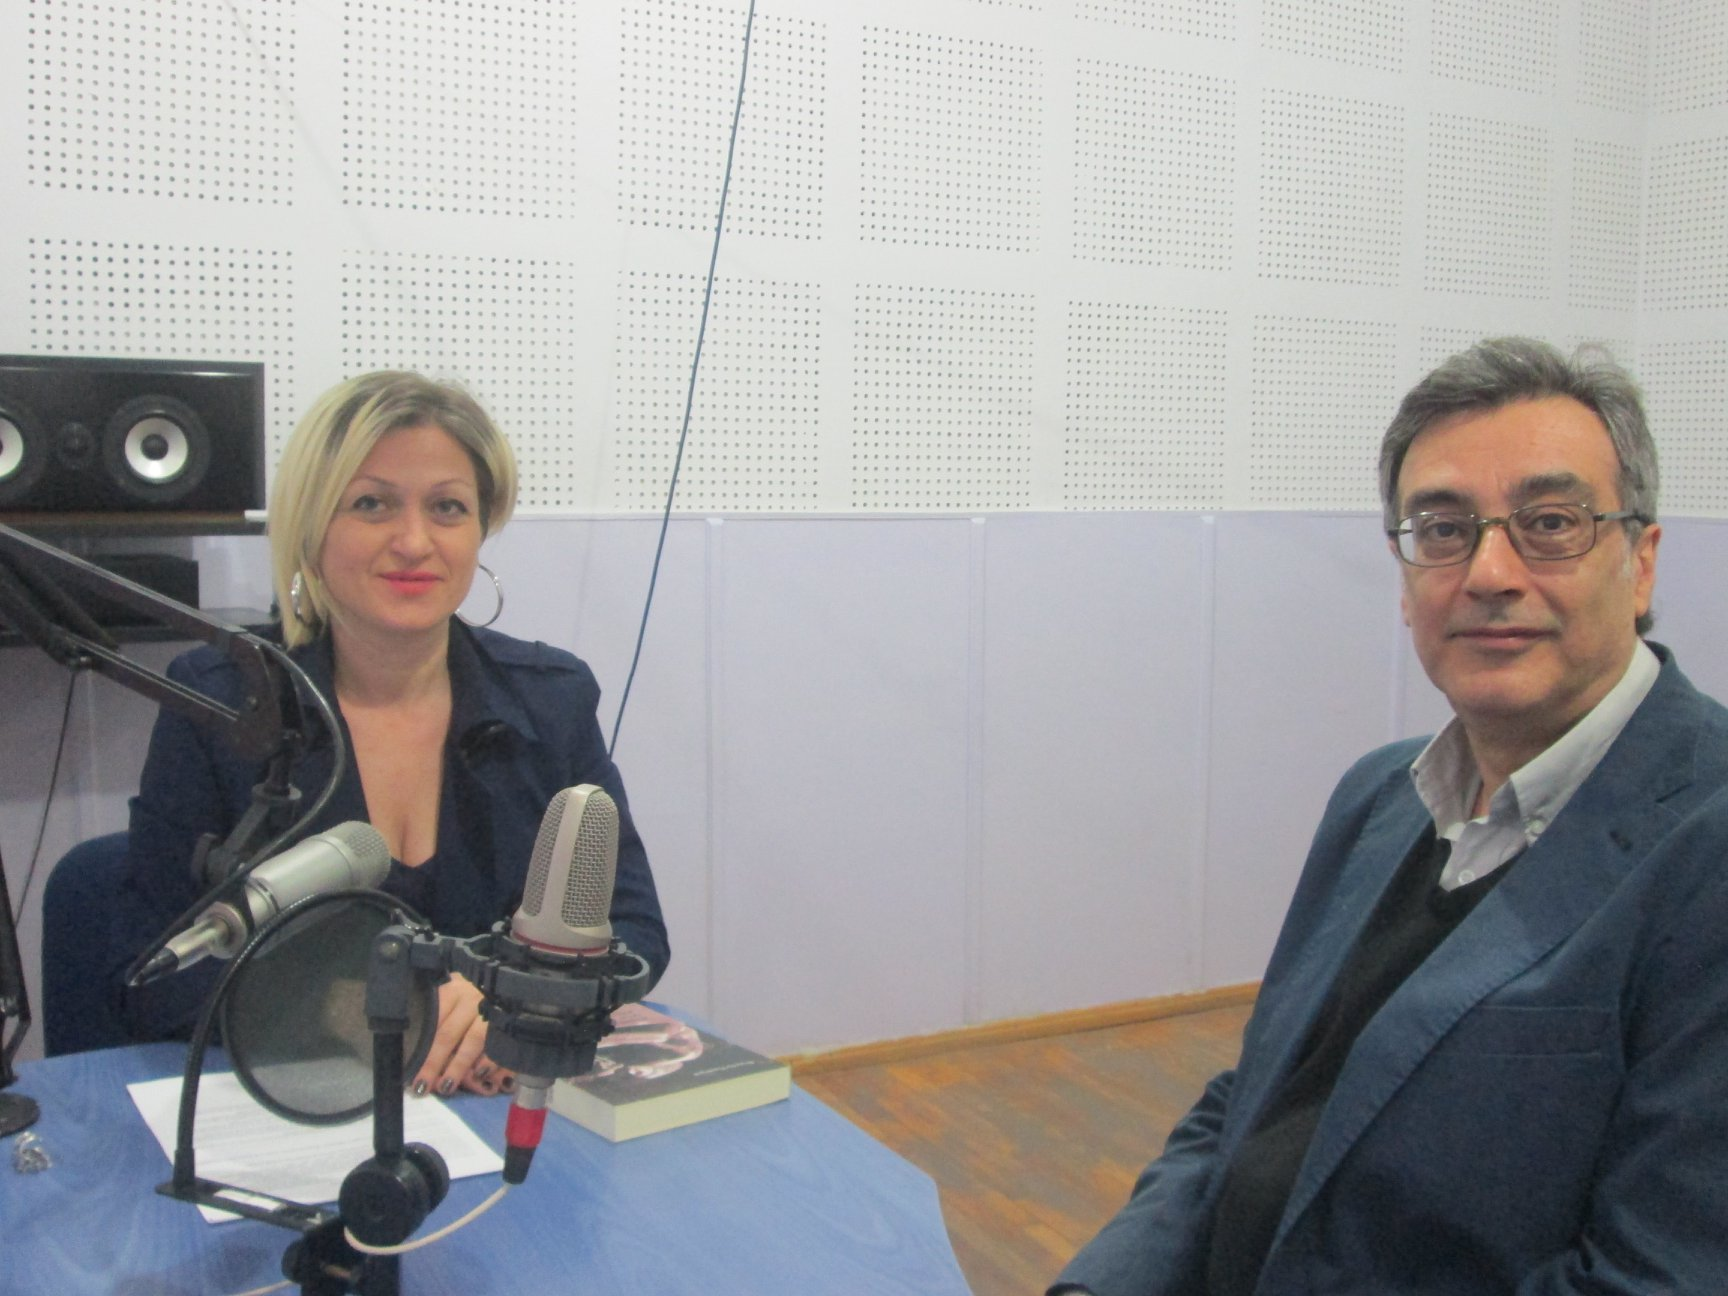 News   Discussion on qualitative changes in Armenian society with Gevorg  Ter-Gabrielyan    CSO DePo 440db02449